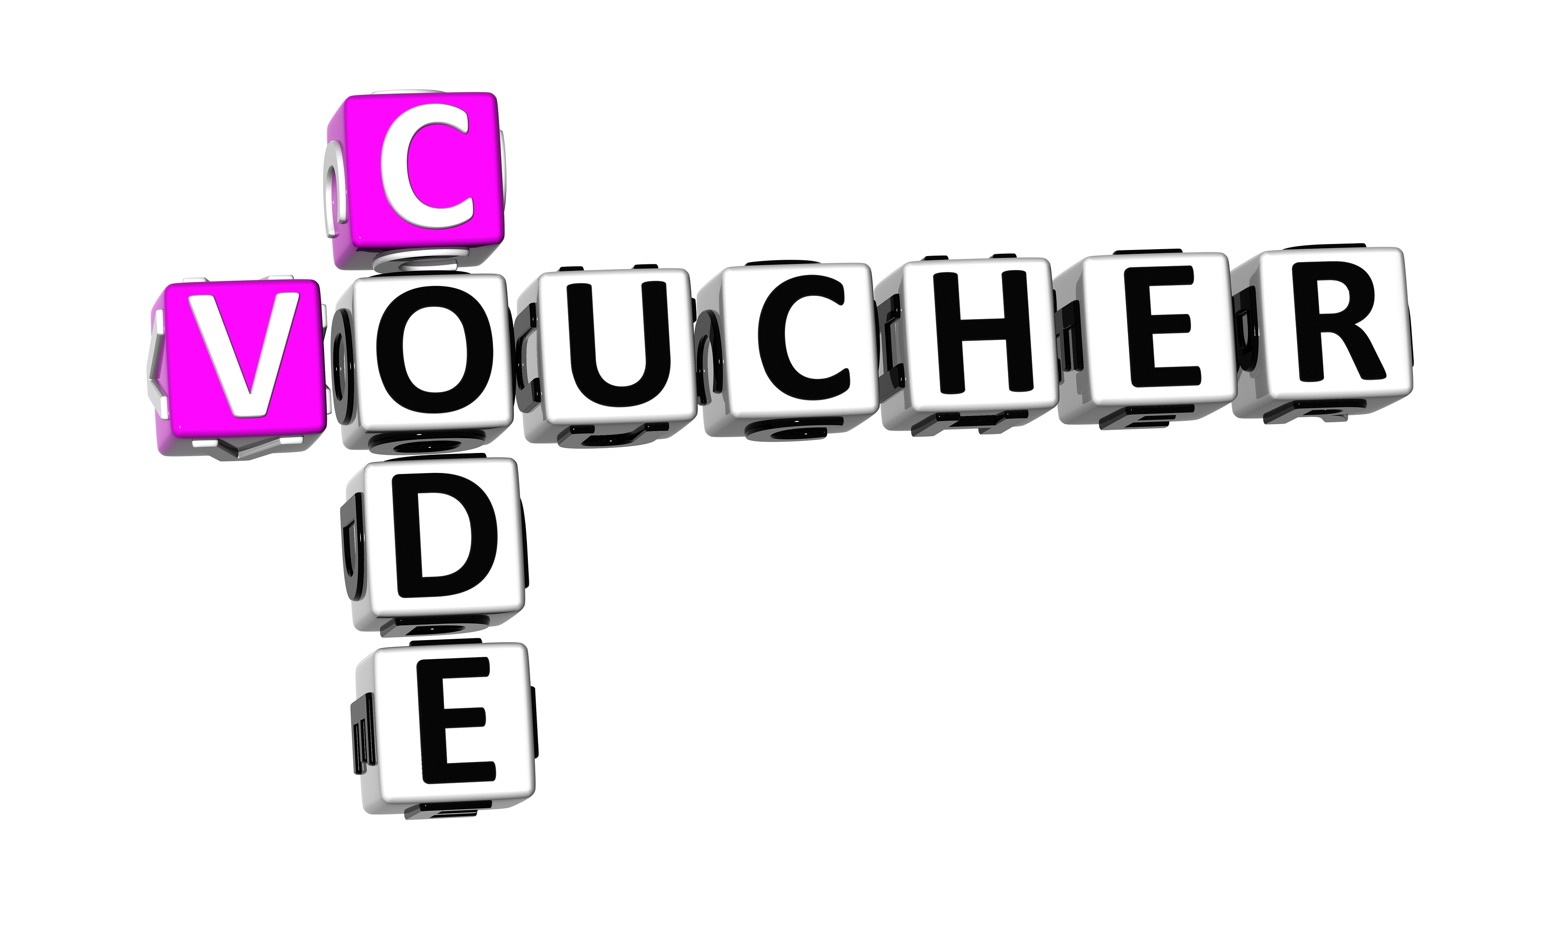 voucher code letter blocks